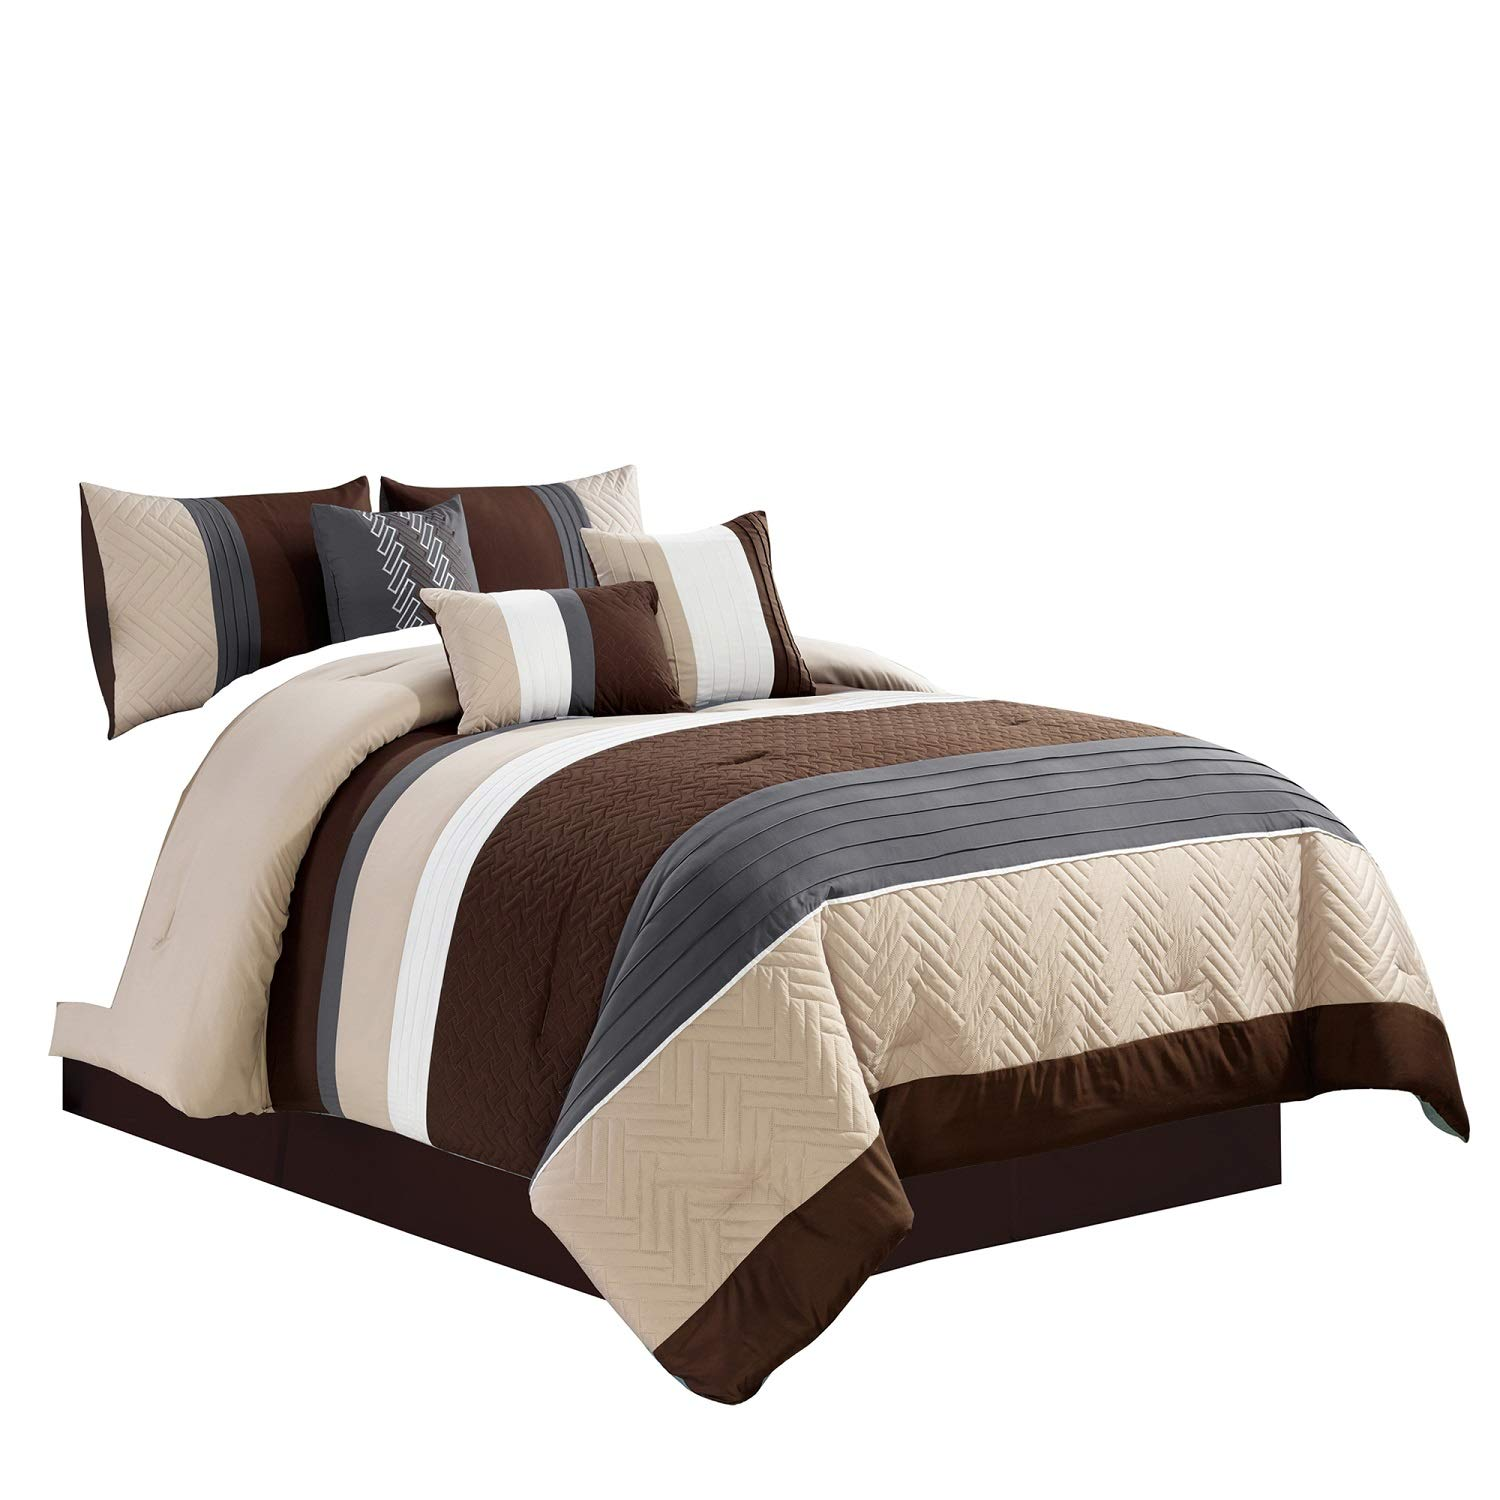 7 Piece Bed In A Bag Modern Comforter Sets With Gray Brown Beige Color